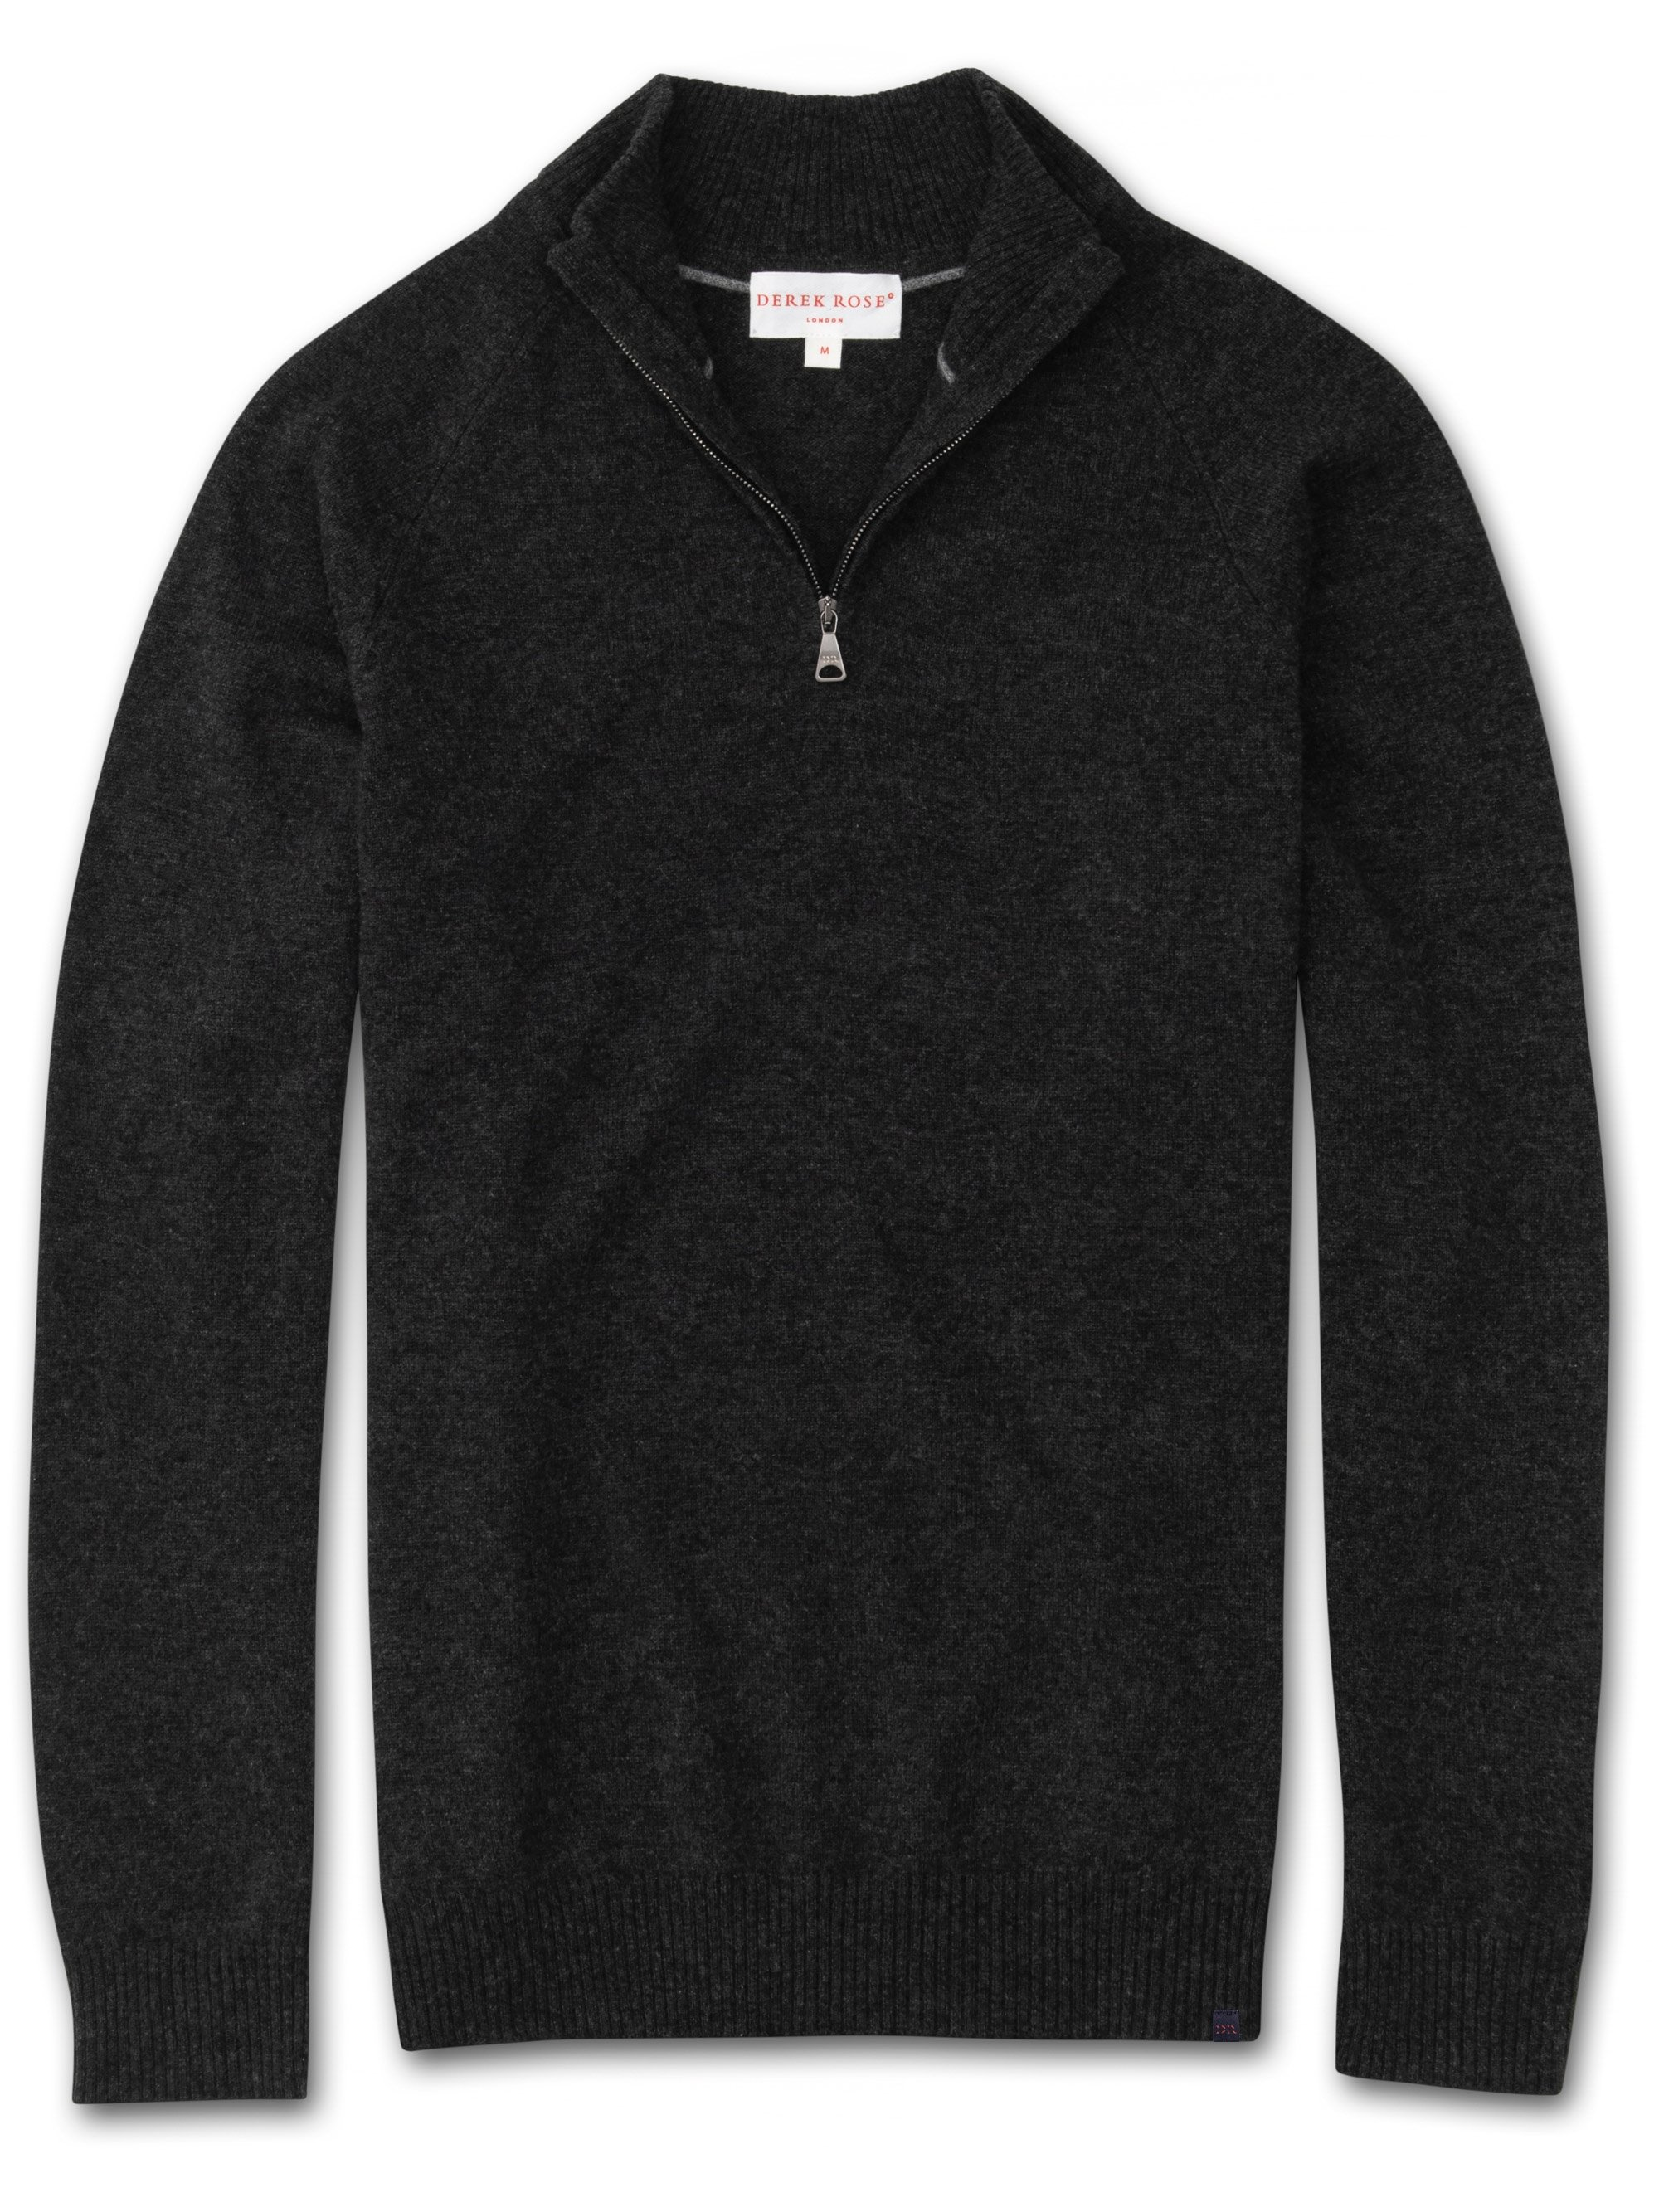 Men's Cashmere Half-Zip Sweater Finley 2 Pure Cashmere Charcoal